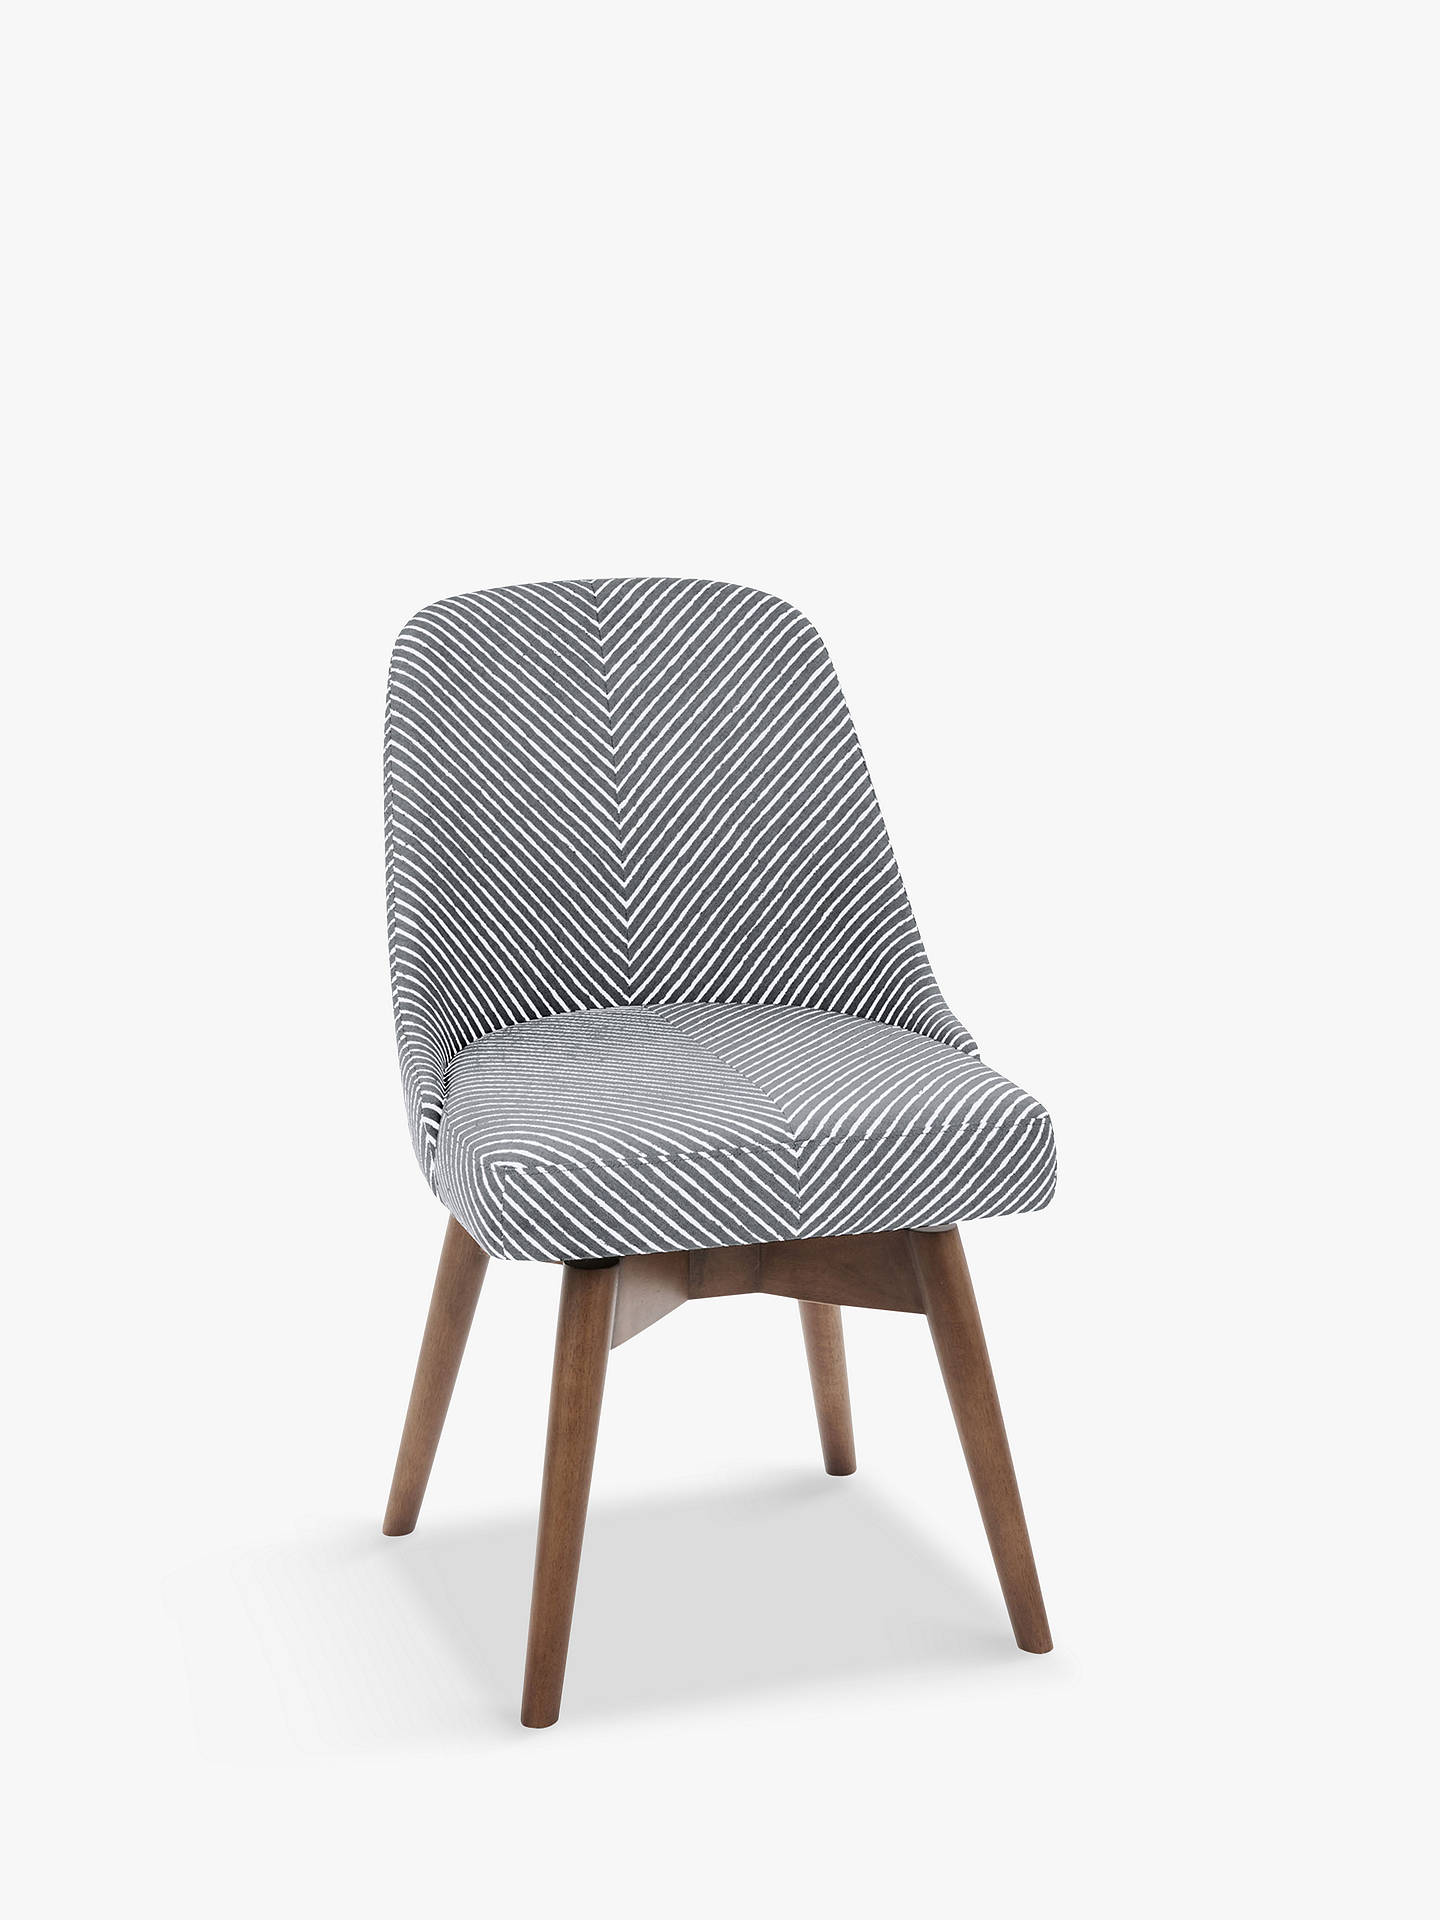 Prime West Elm Mid Century Office Chair Gravel Stripe Machost Co Dining Chair Design Ideas Machostcouk